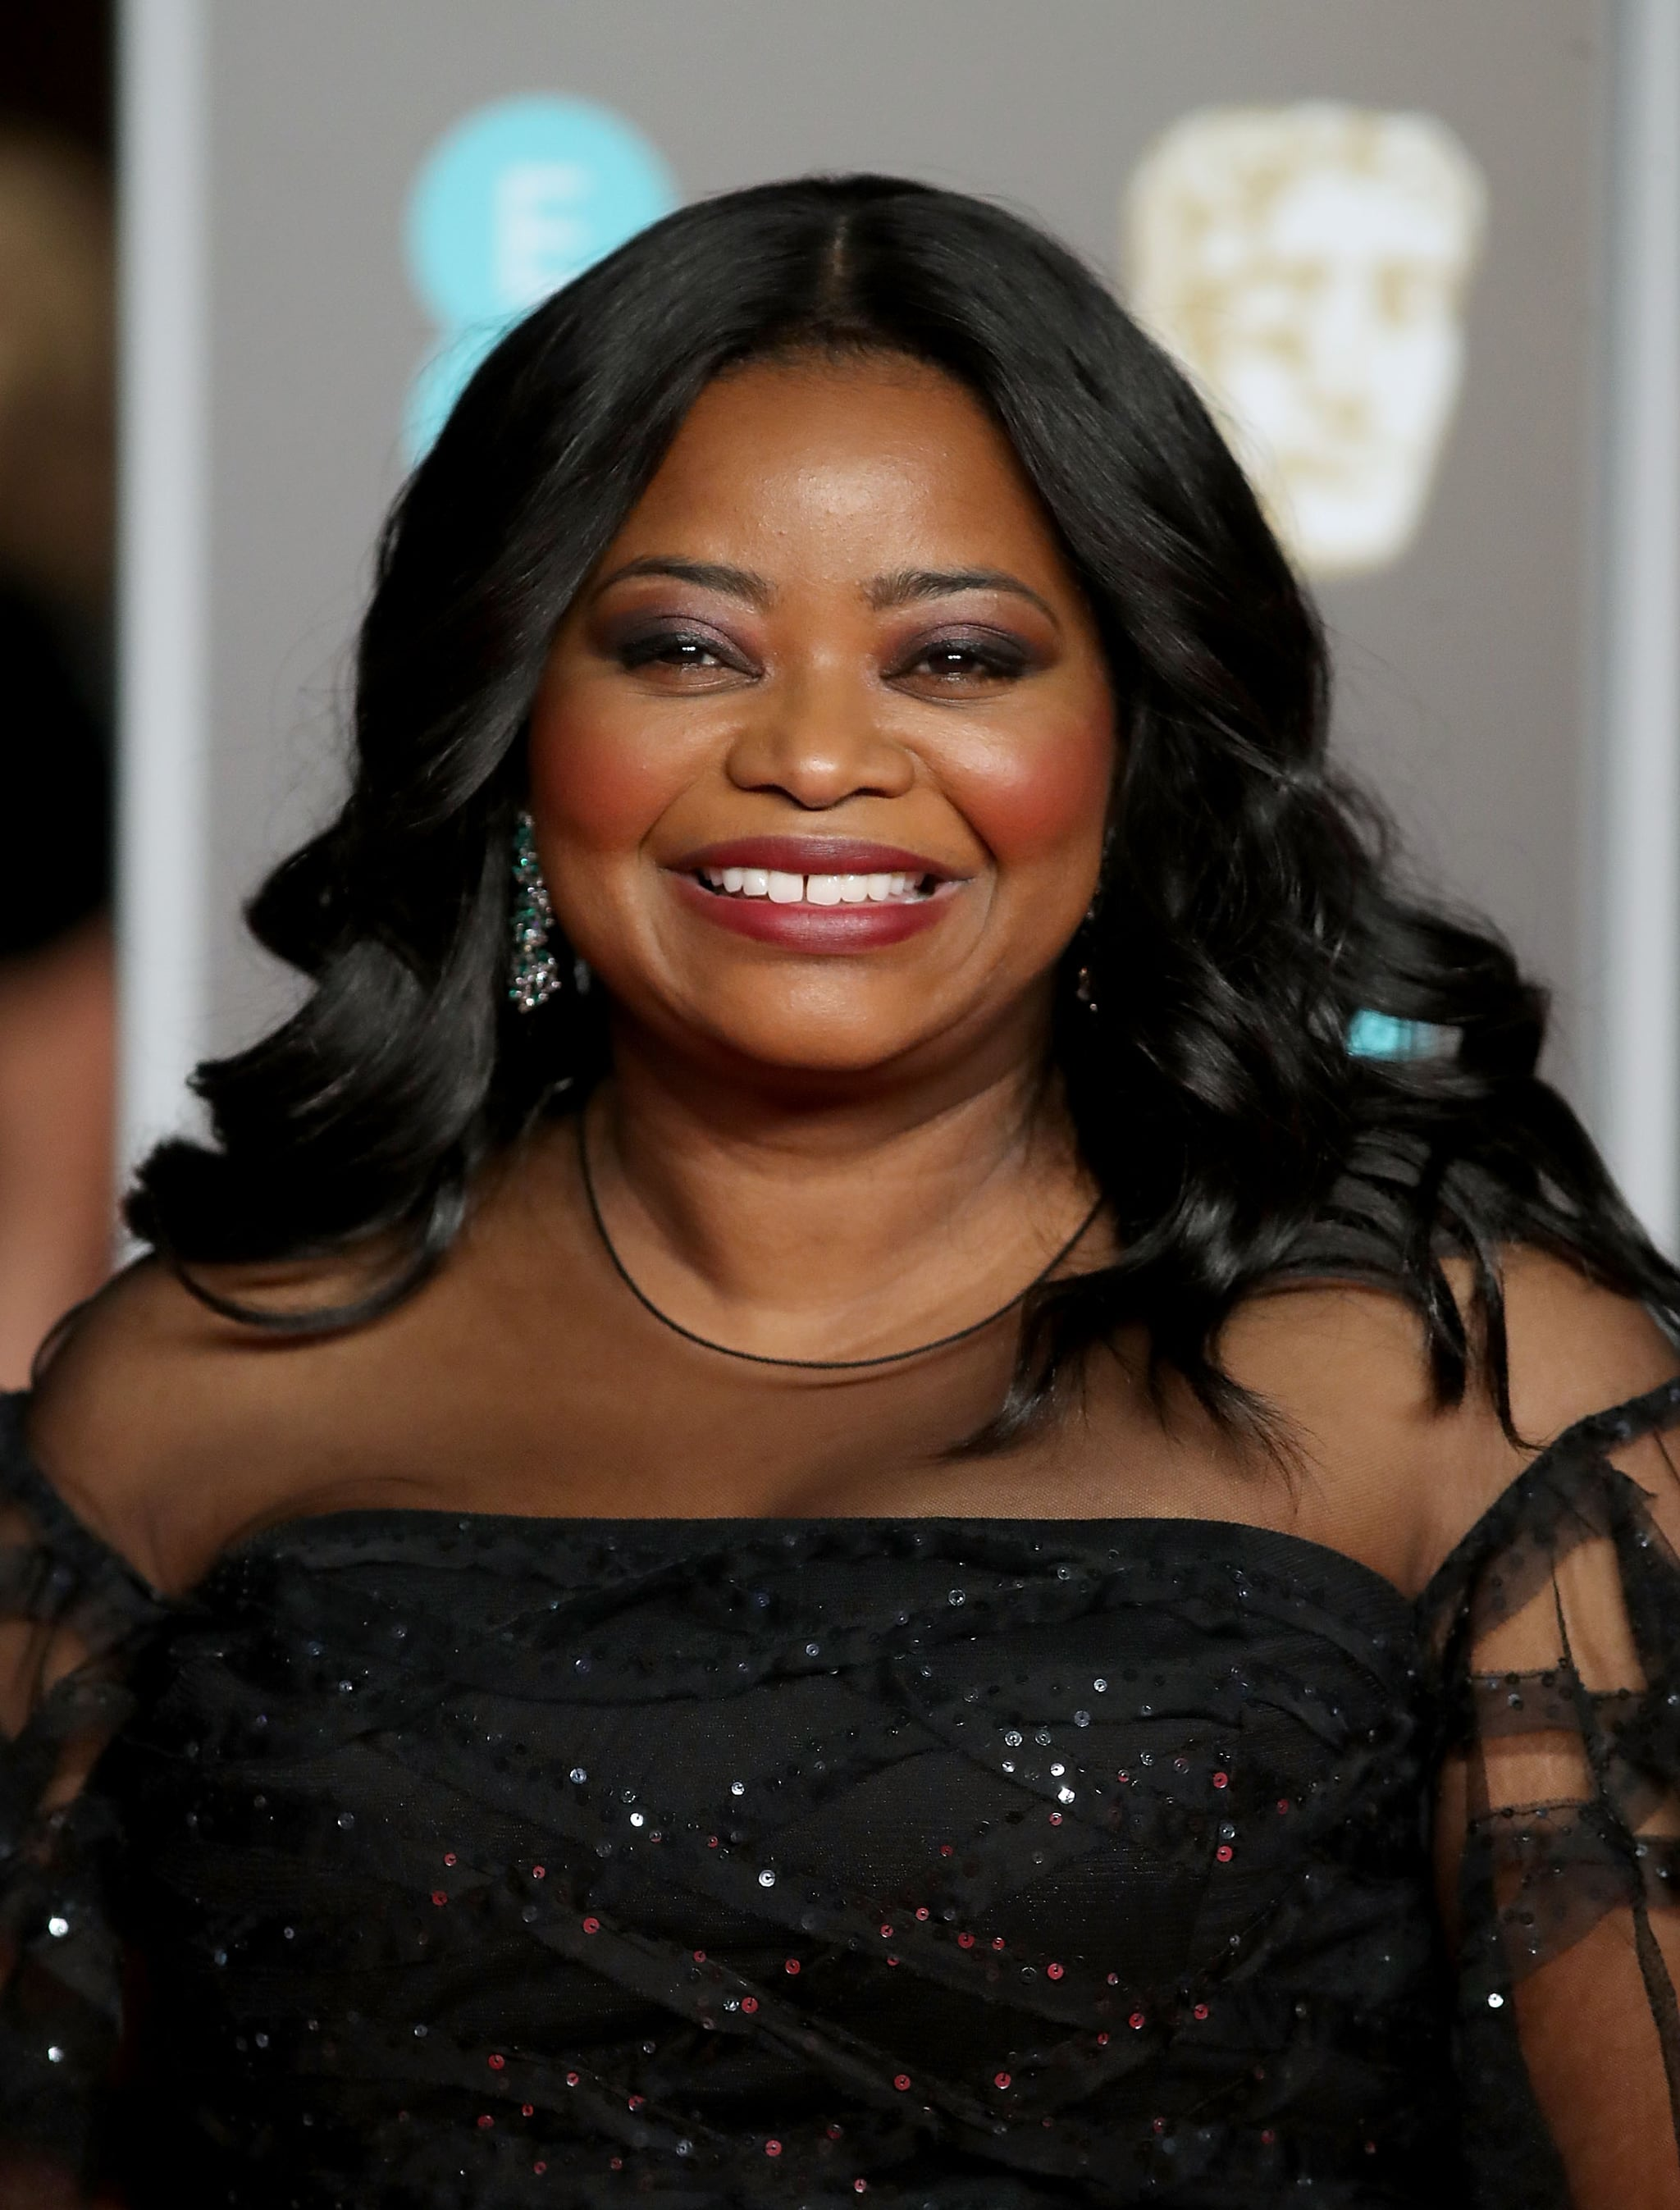 LONDON, ENGLAND - FEBRUARY 18:  Octavia Spencer attends the EE British Academy Film Awards (BAFTAs) held at Royal Albert Hall on February 18, 2018 in London, England.  (Photo by Mike Marsland/Mike Marsland/WireImage)